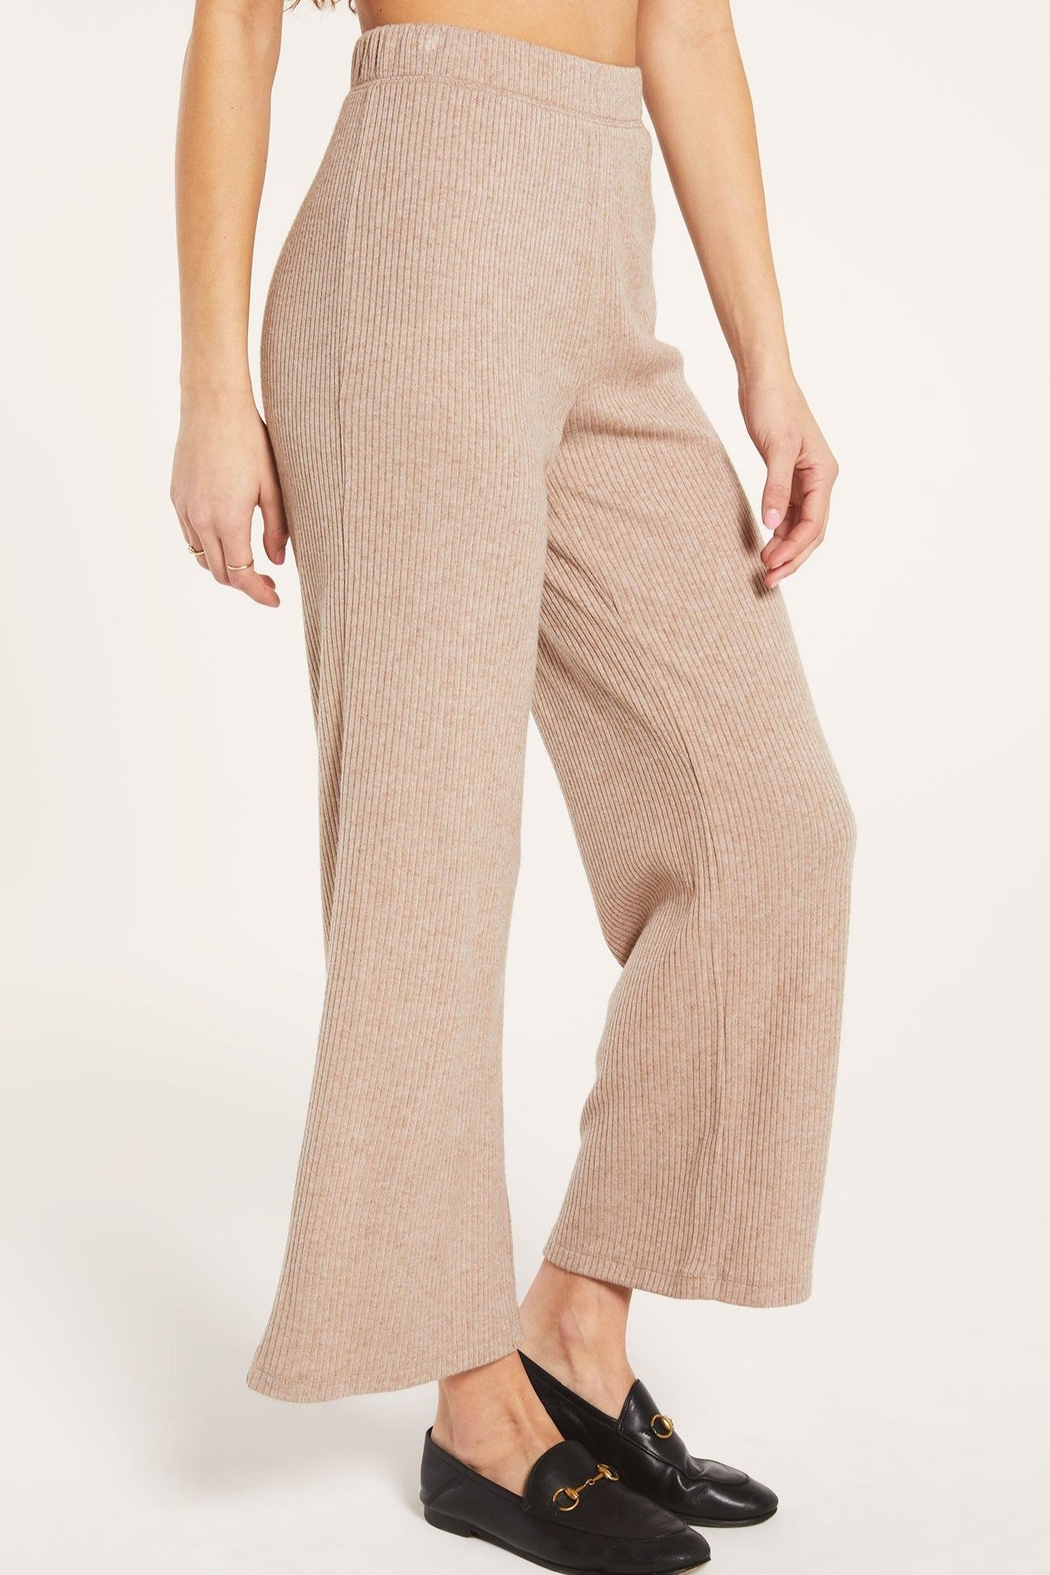 z supply Wide-Leg Ribbed Pant - Back Cropped Image